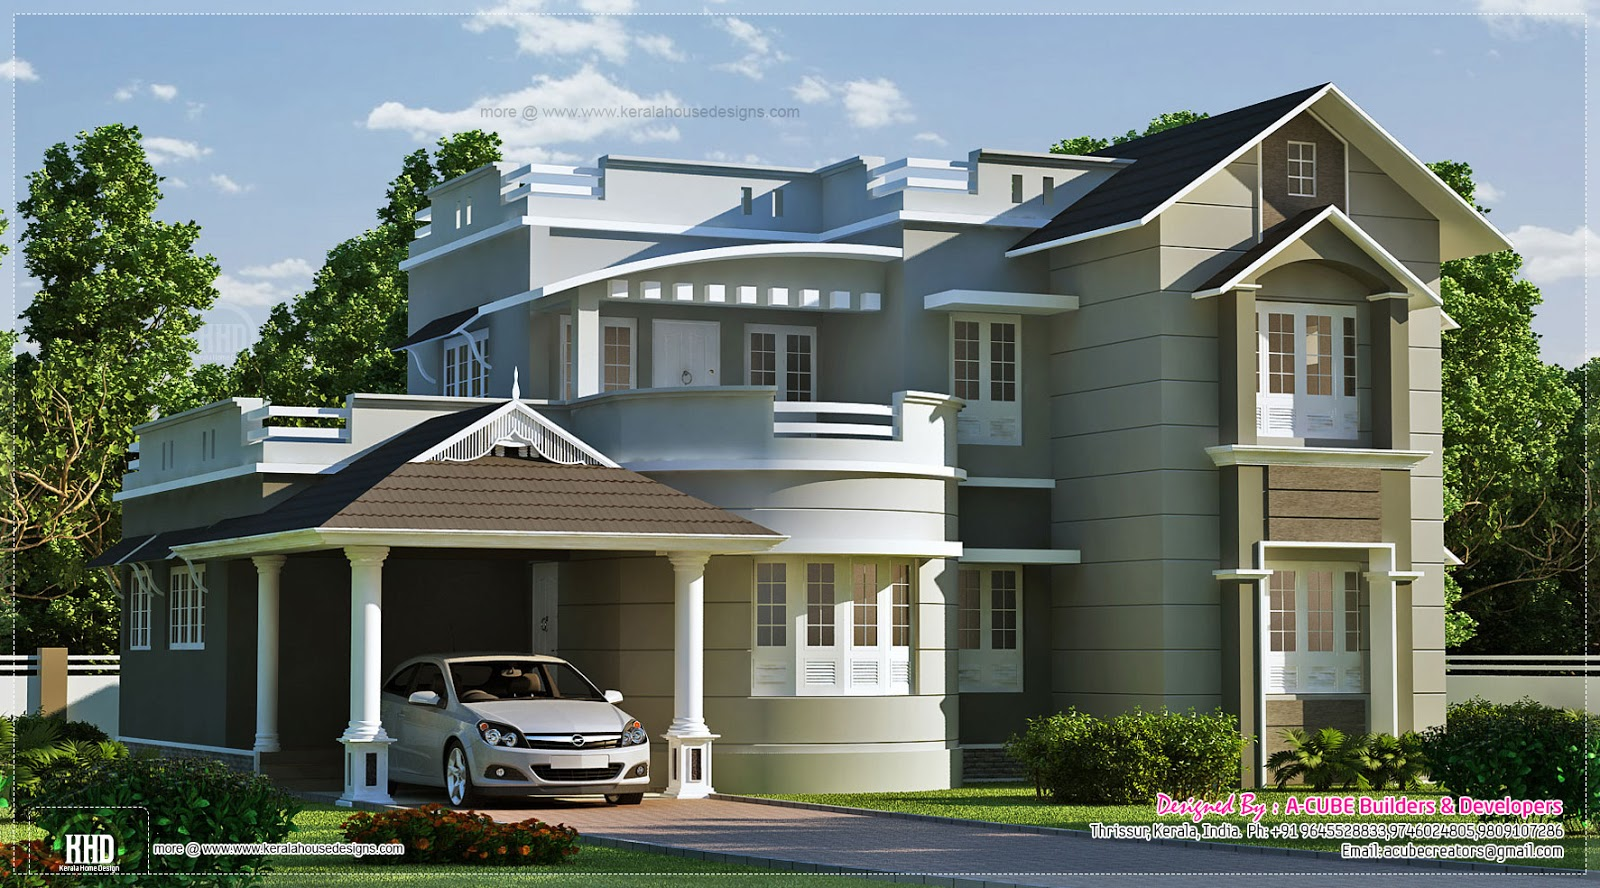 New style home exterior in 1800 kerala home for Kerala new home pictures